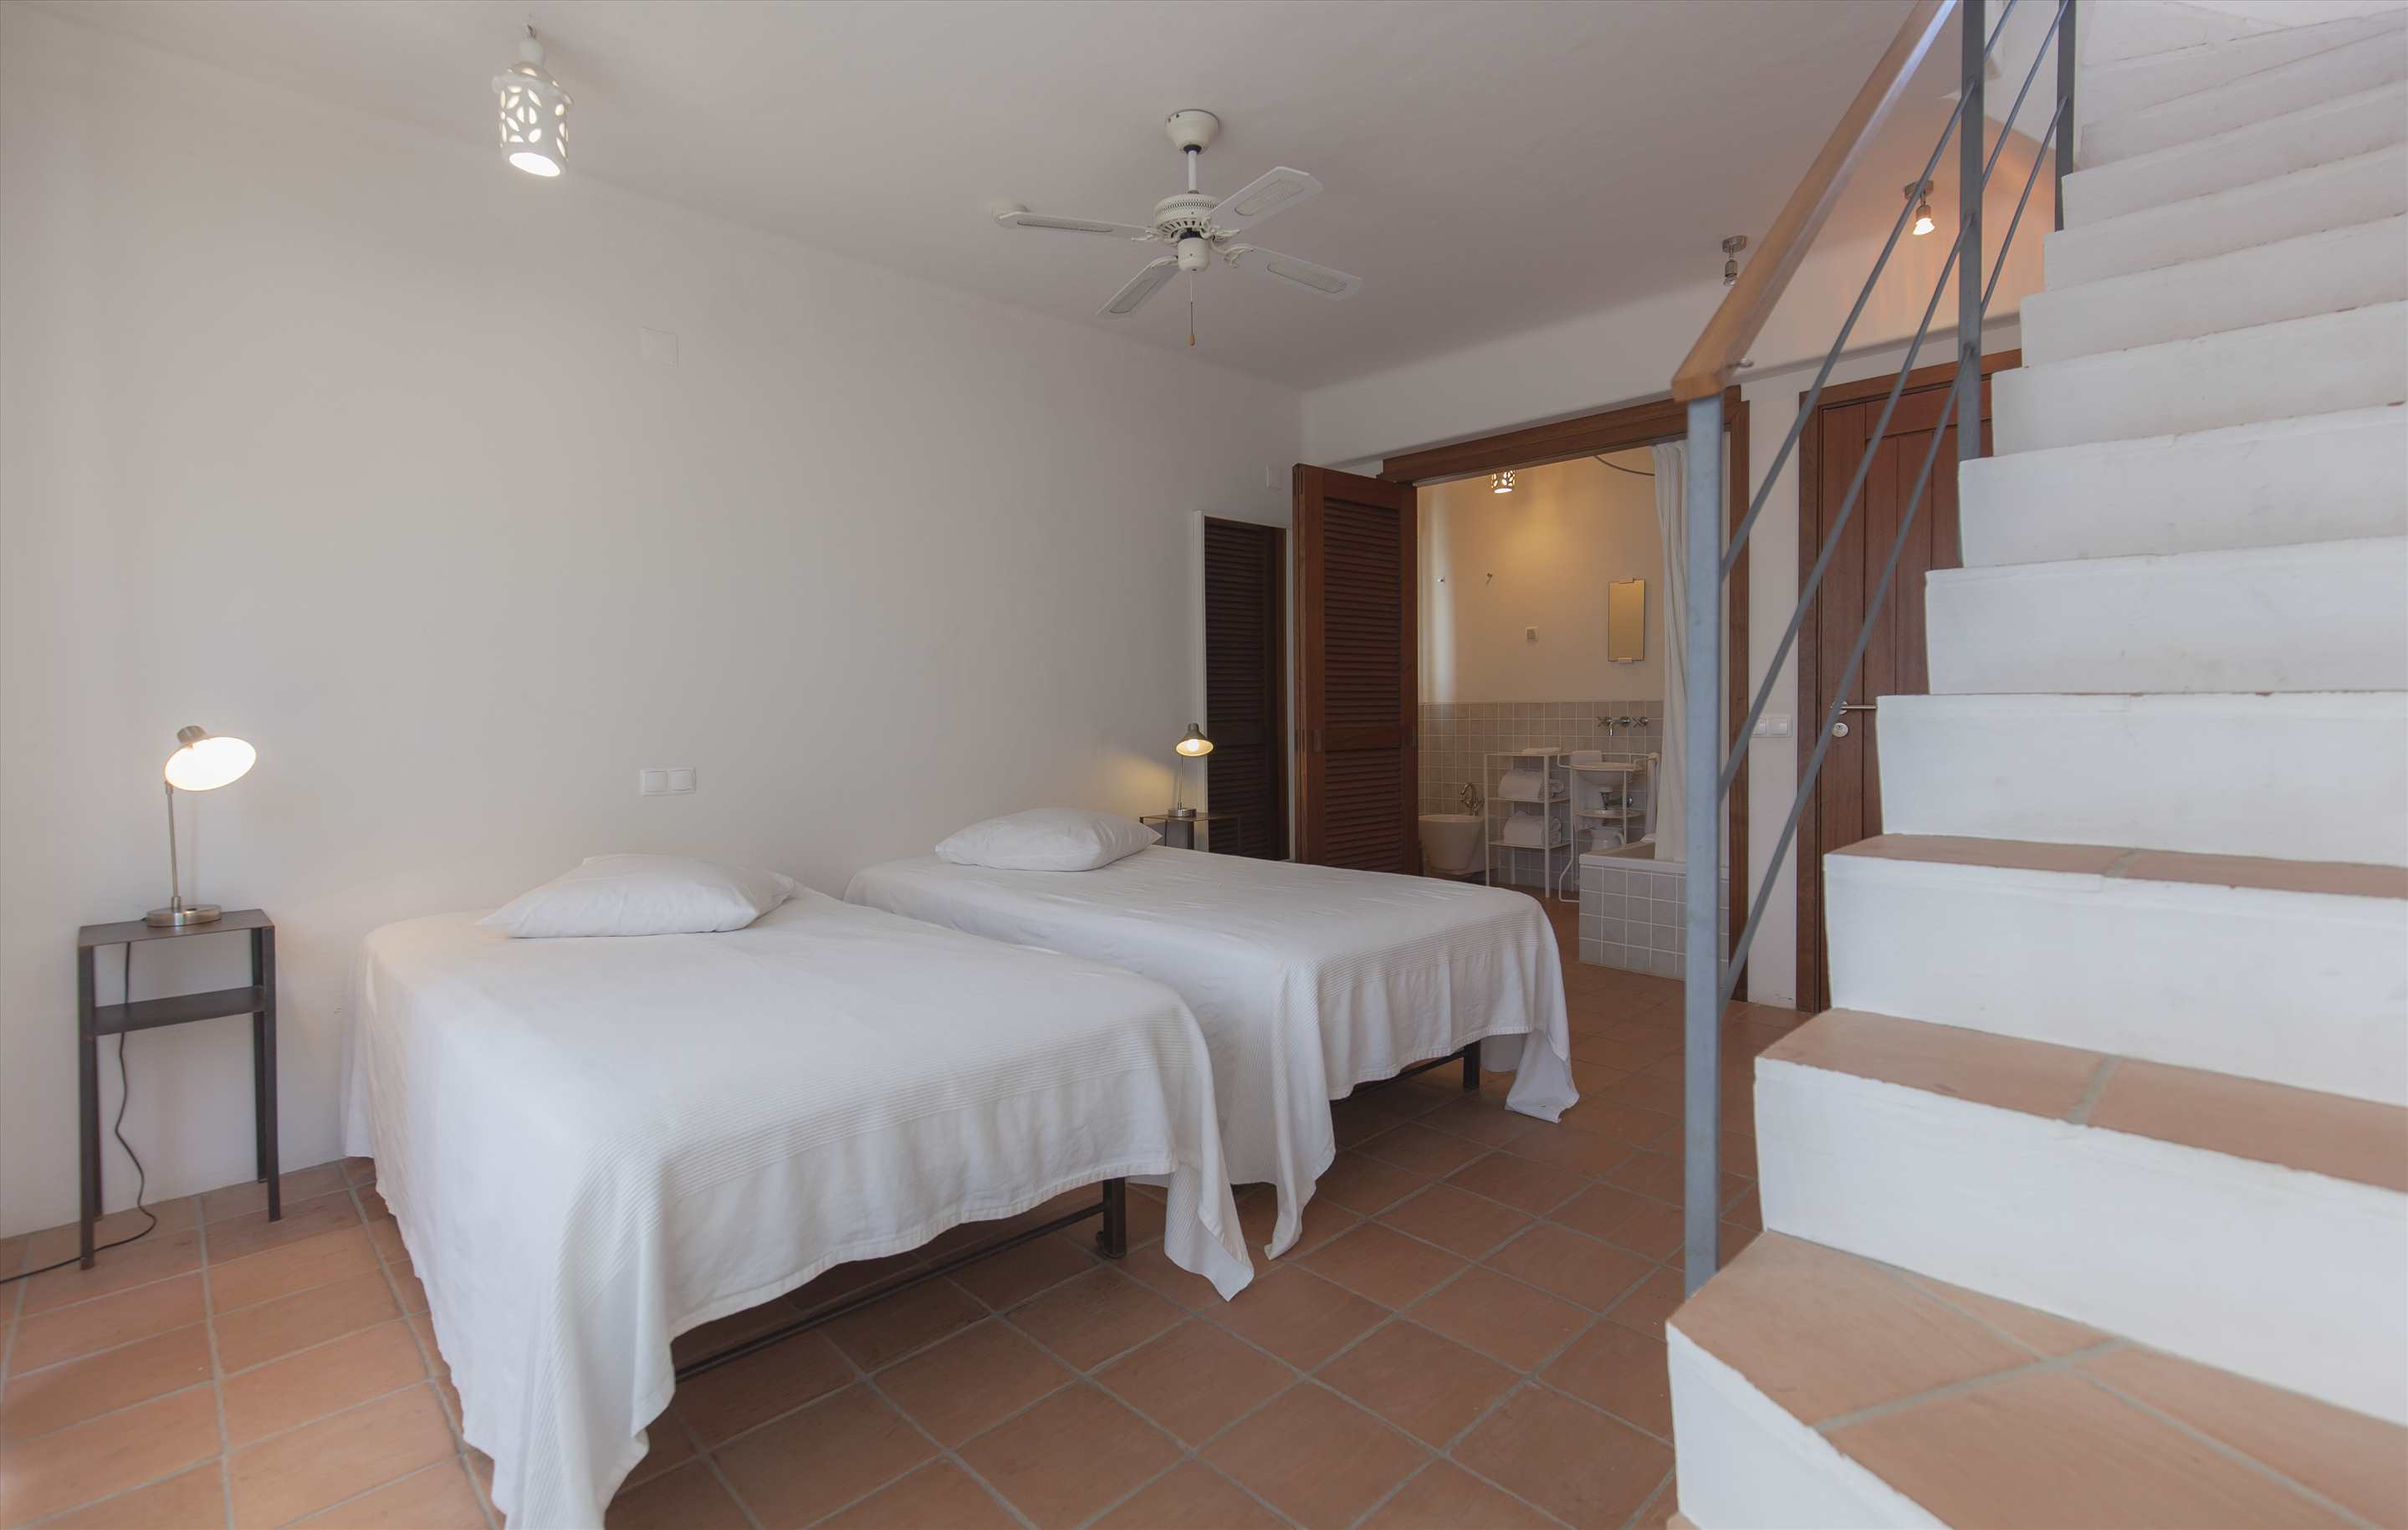 Casa Grande Mós , 8 bedroom villa in Lagos and Praia da Luz, Algarve Photo #22